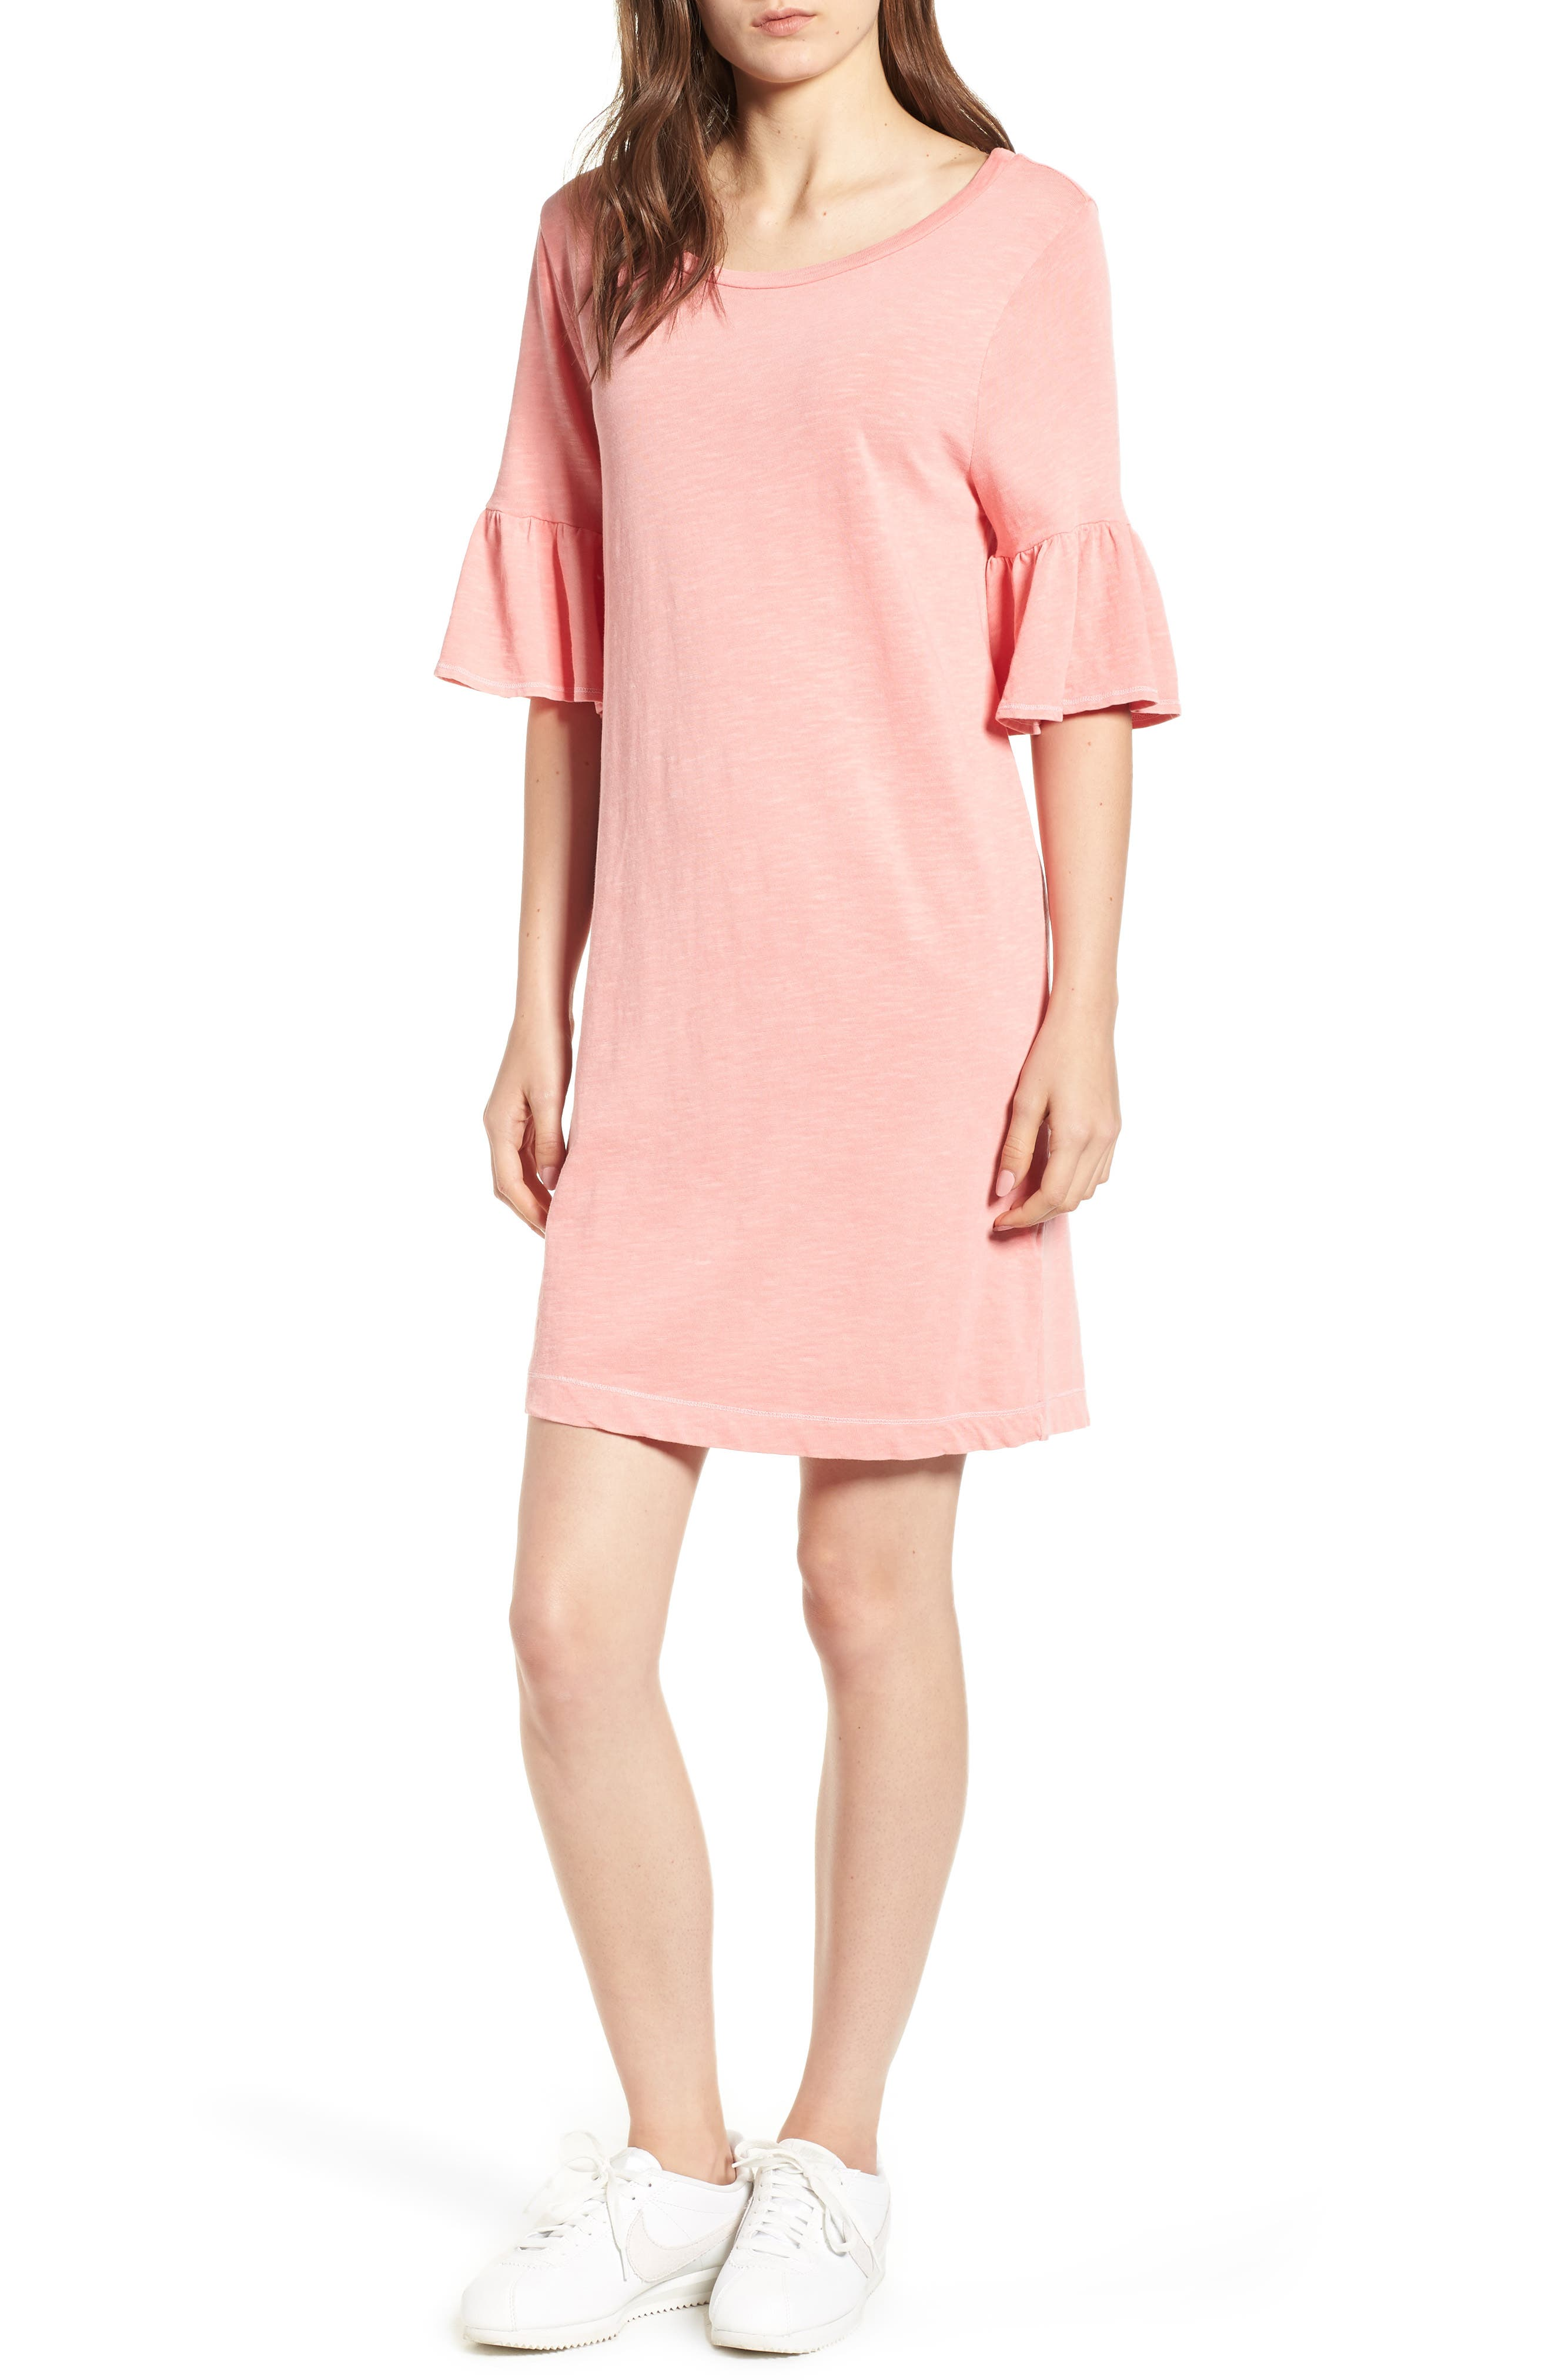 Ruffle Sleeve Shift Dress,                         Main,                         color, Cactus Flower